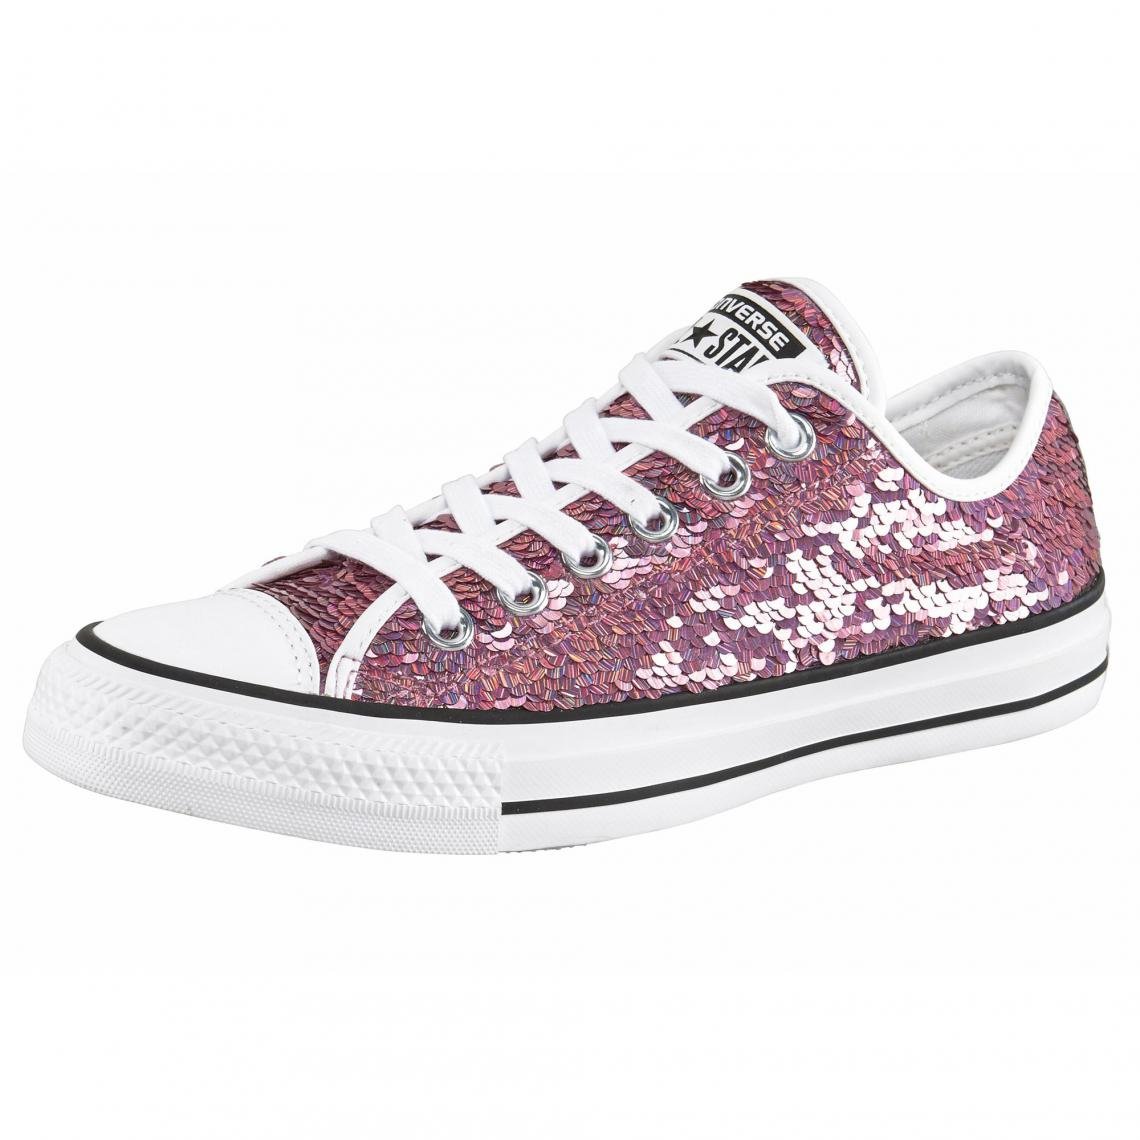 3cde411802b67 Converse Sneaker Chuck Taylor All Star Holiday Party Ox femme - Rose Converse  Femme